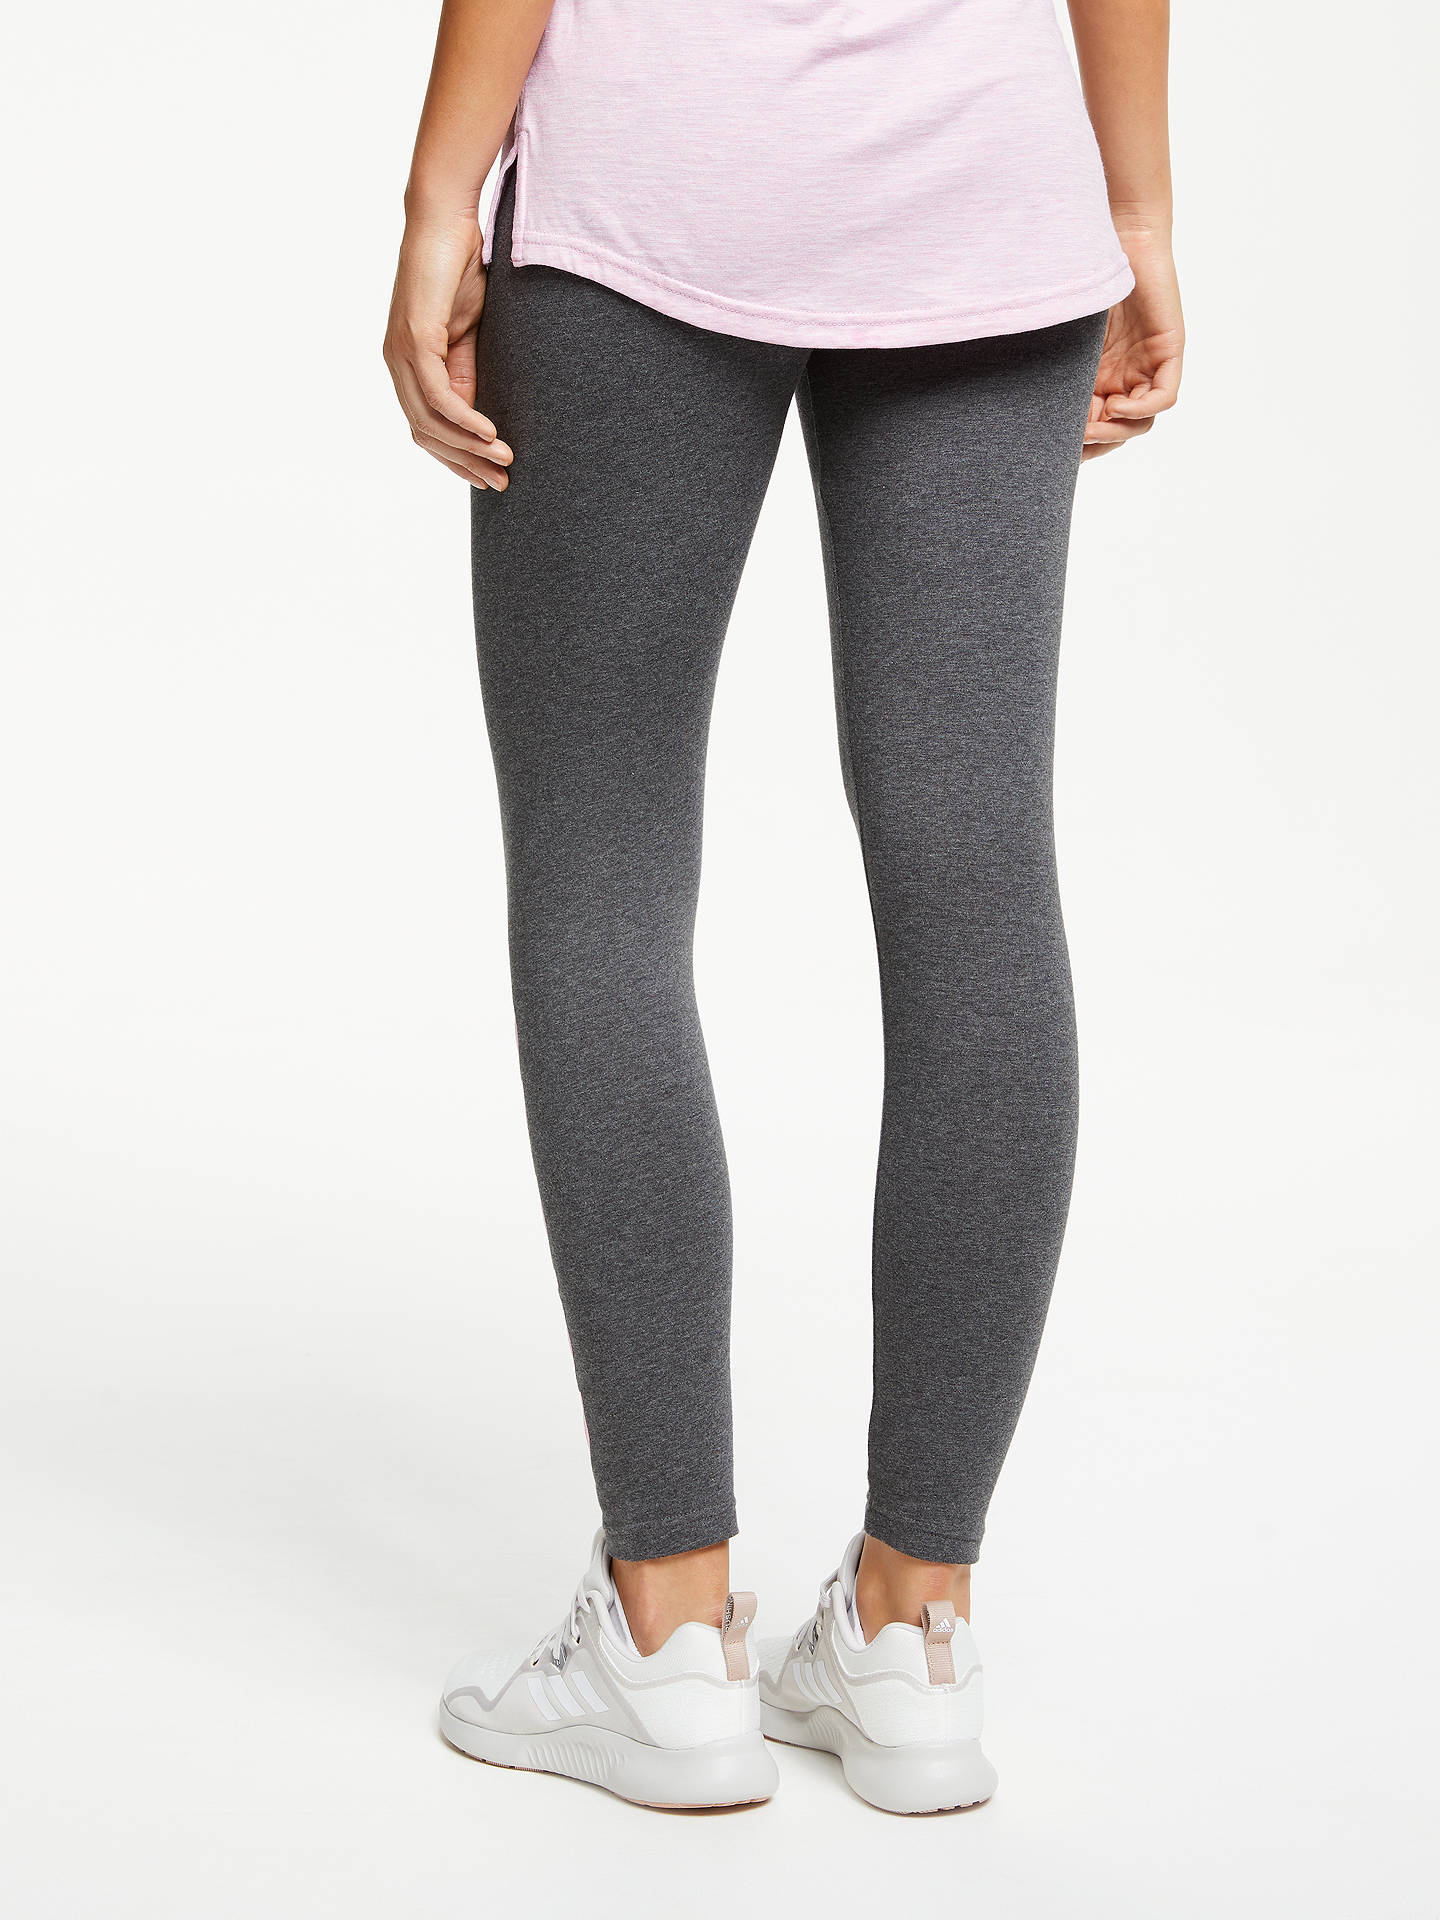 3923a99be2b ... Buy adidas Essentials Linear Tights, Dark Grey Heather/True Pink, S  Online at ...